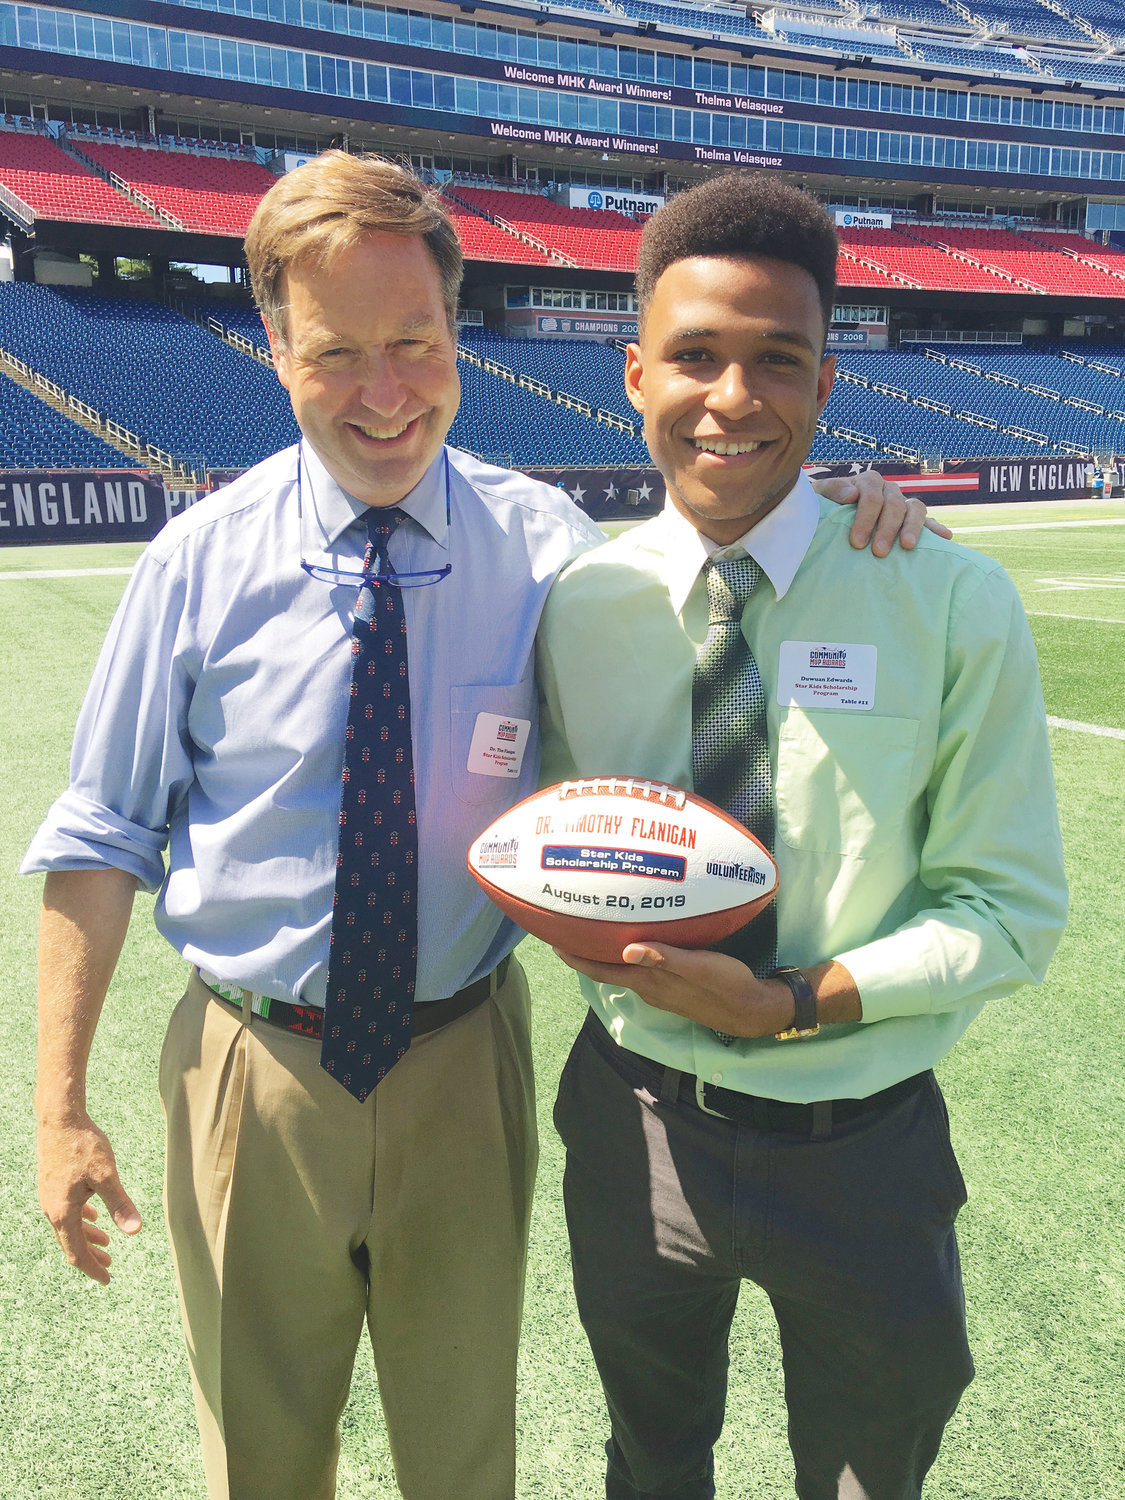 Deacon Dr. Flanigan shares his 2019 Myra Kraft Community MVP Award on the field at Gillette Stadium with Star Kid Duwuan Edwards, of Newport.